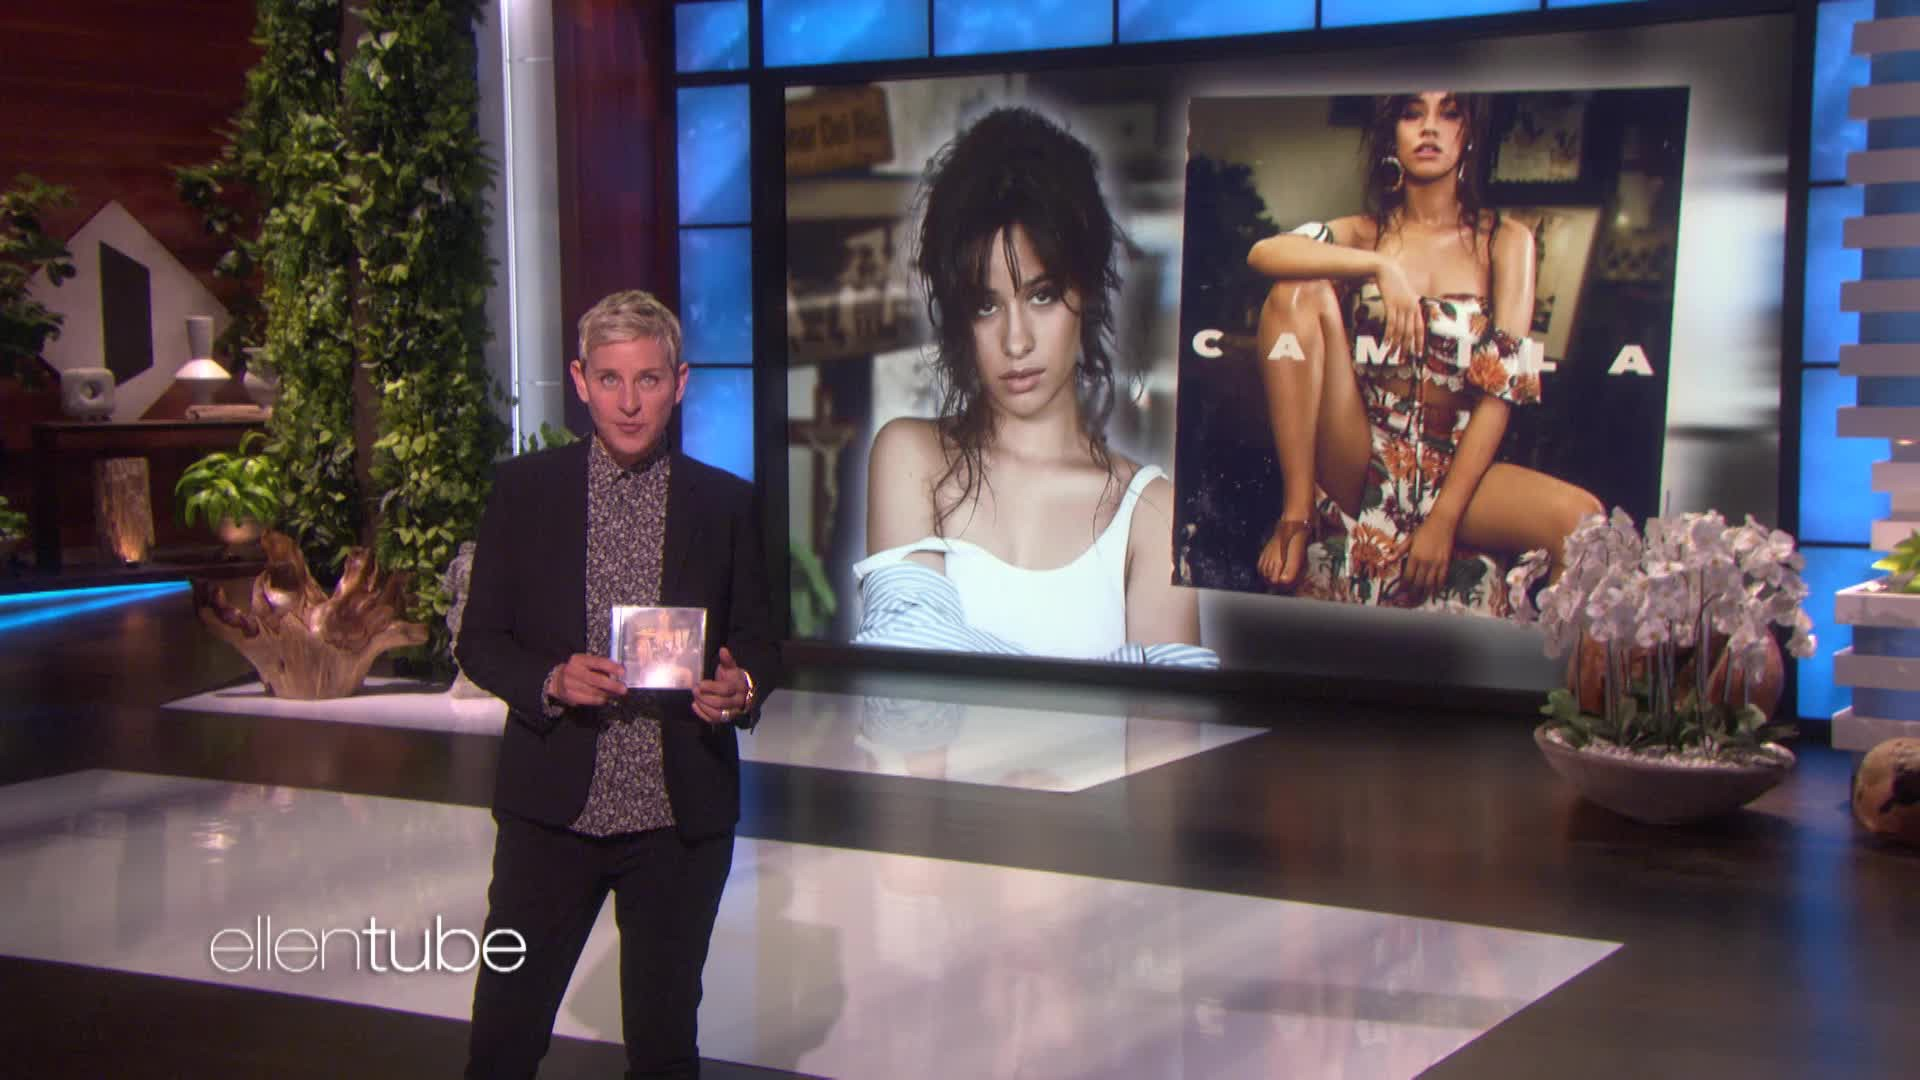 Camila Cabello Performs Never Be The Same On Ellen DeGeneres Show Watch Now